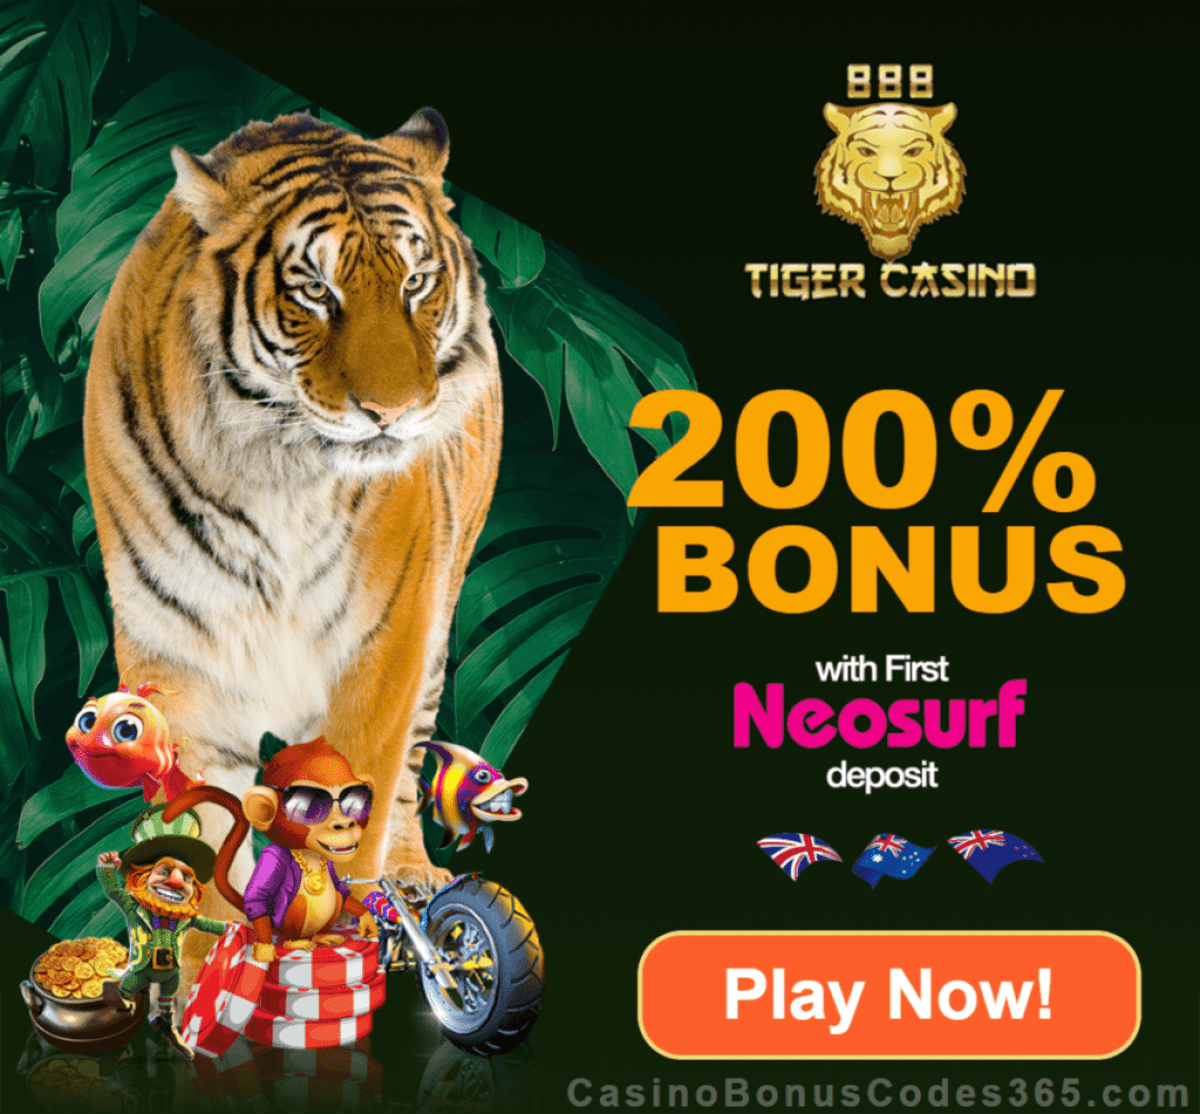 888 Tiger Casino 200% Match Bonus for First Neosurf Deposit